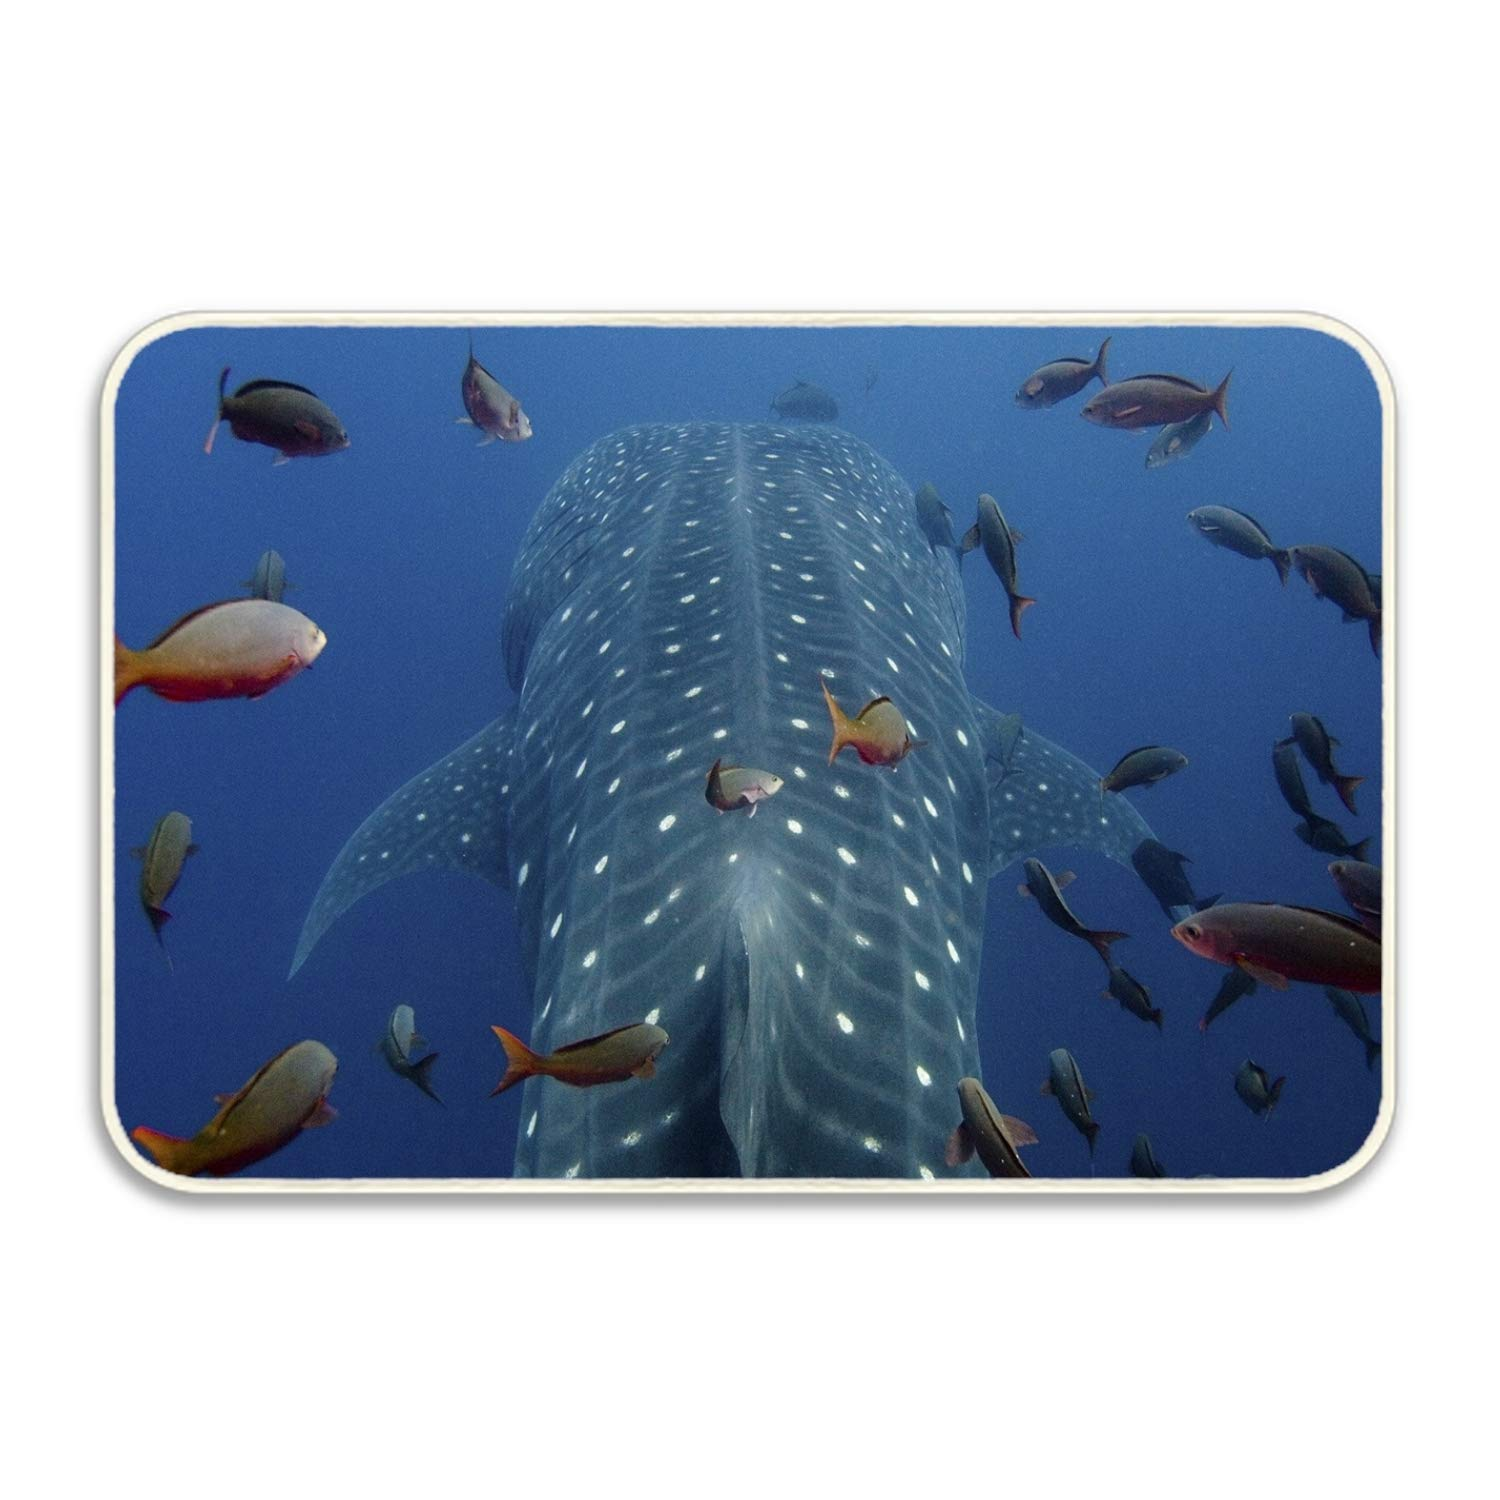 Amazon.com : Cecil Beard Animal Whale Sharks Inspirational ...